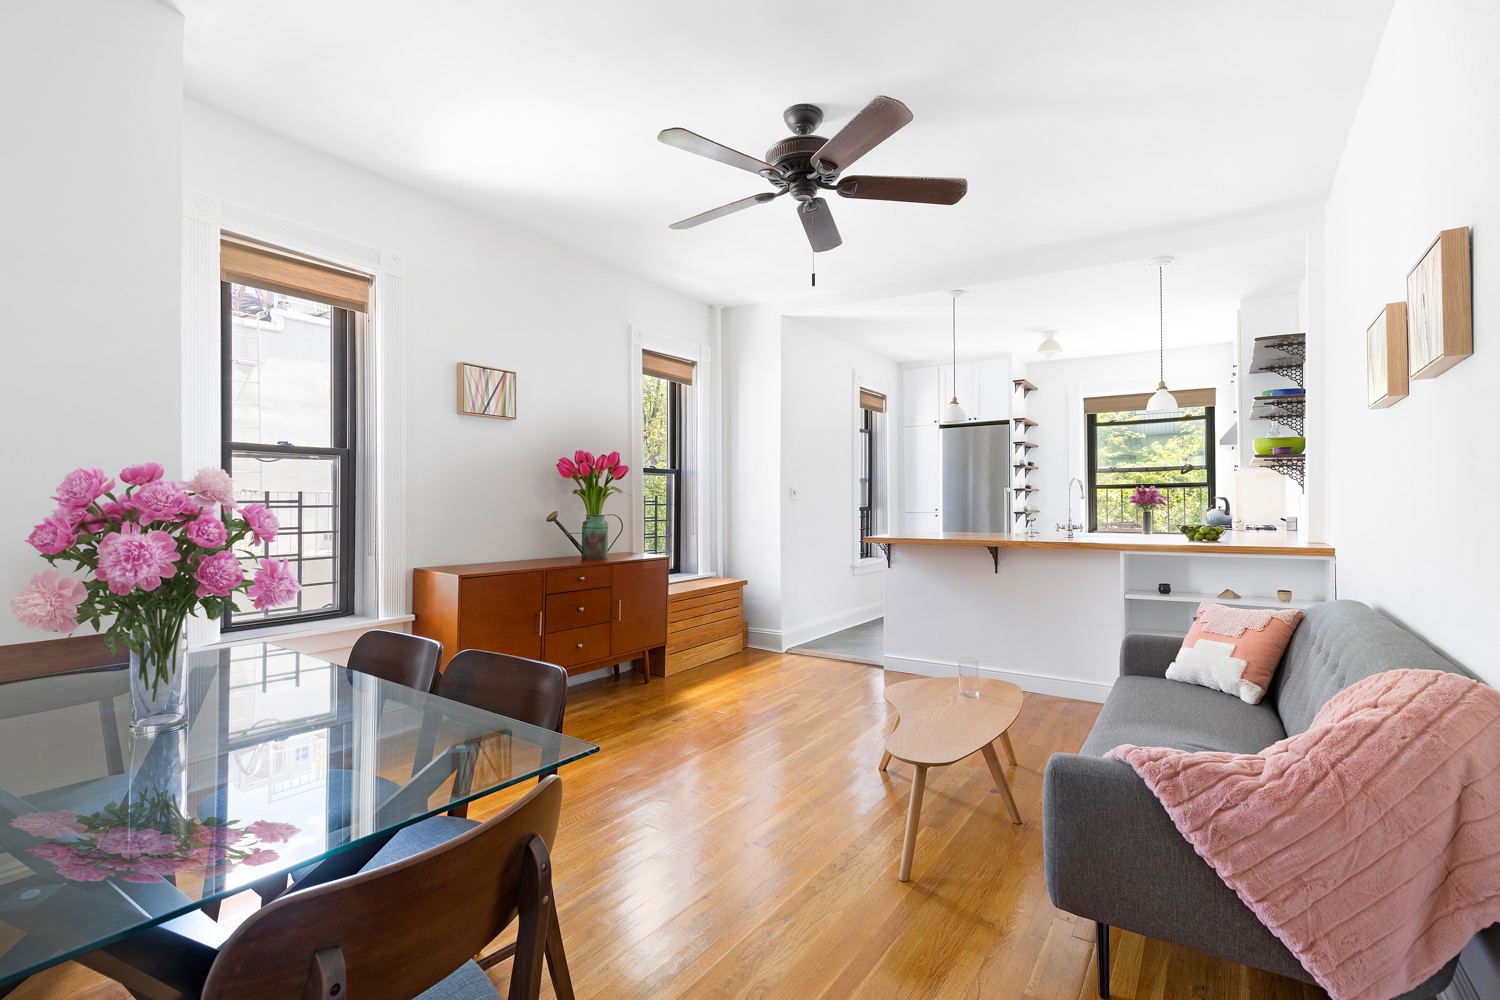 428 Prospect place, 3L - $850,000 - Prospect Heights